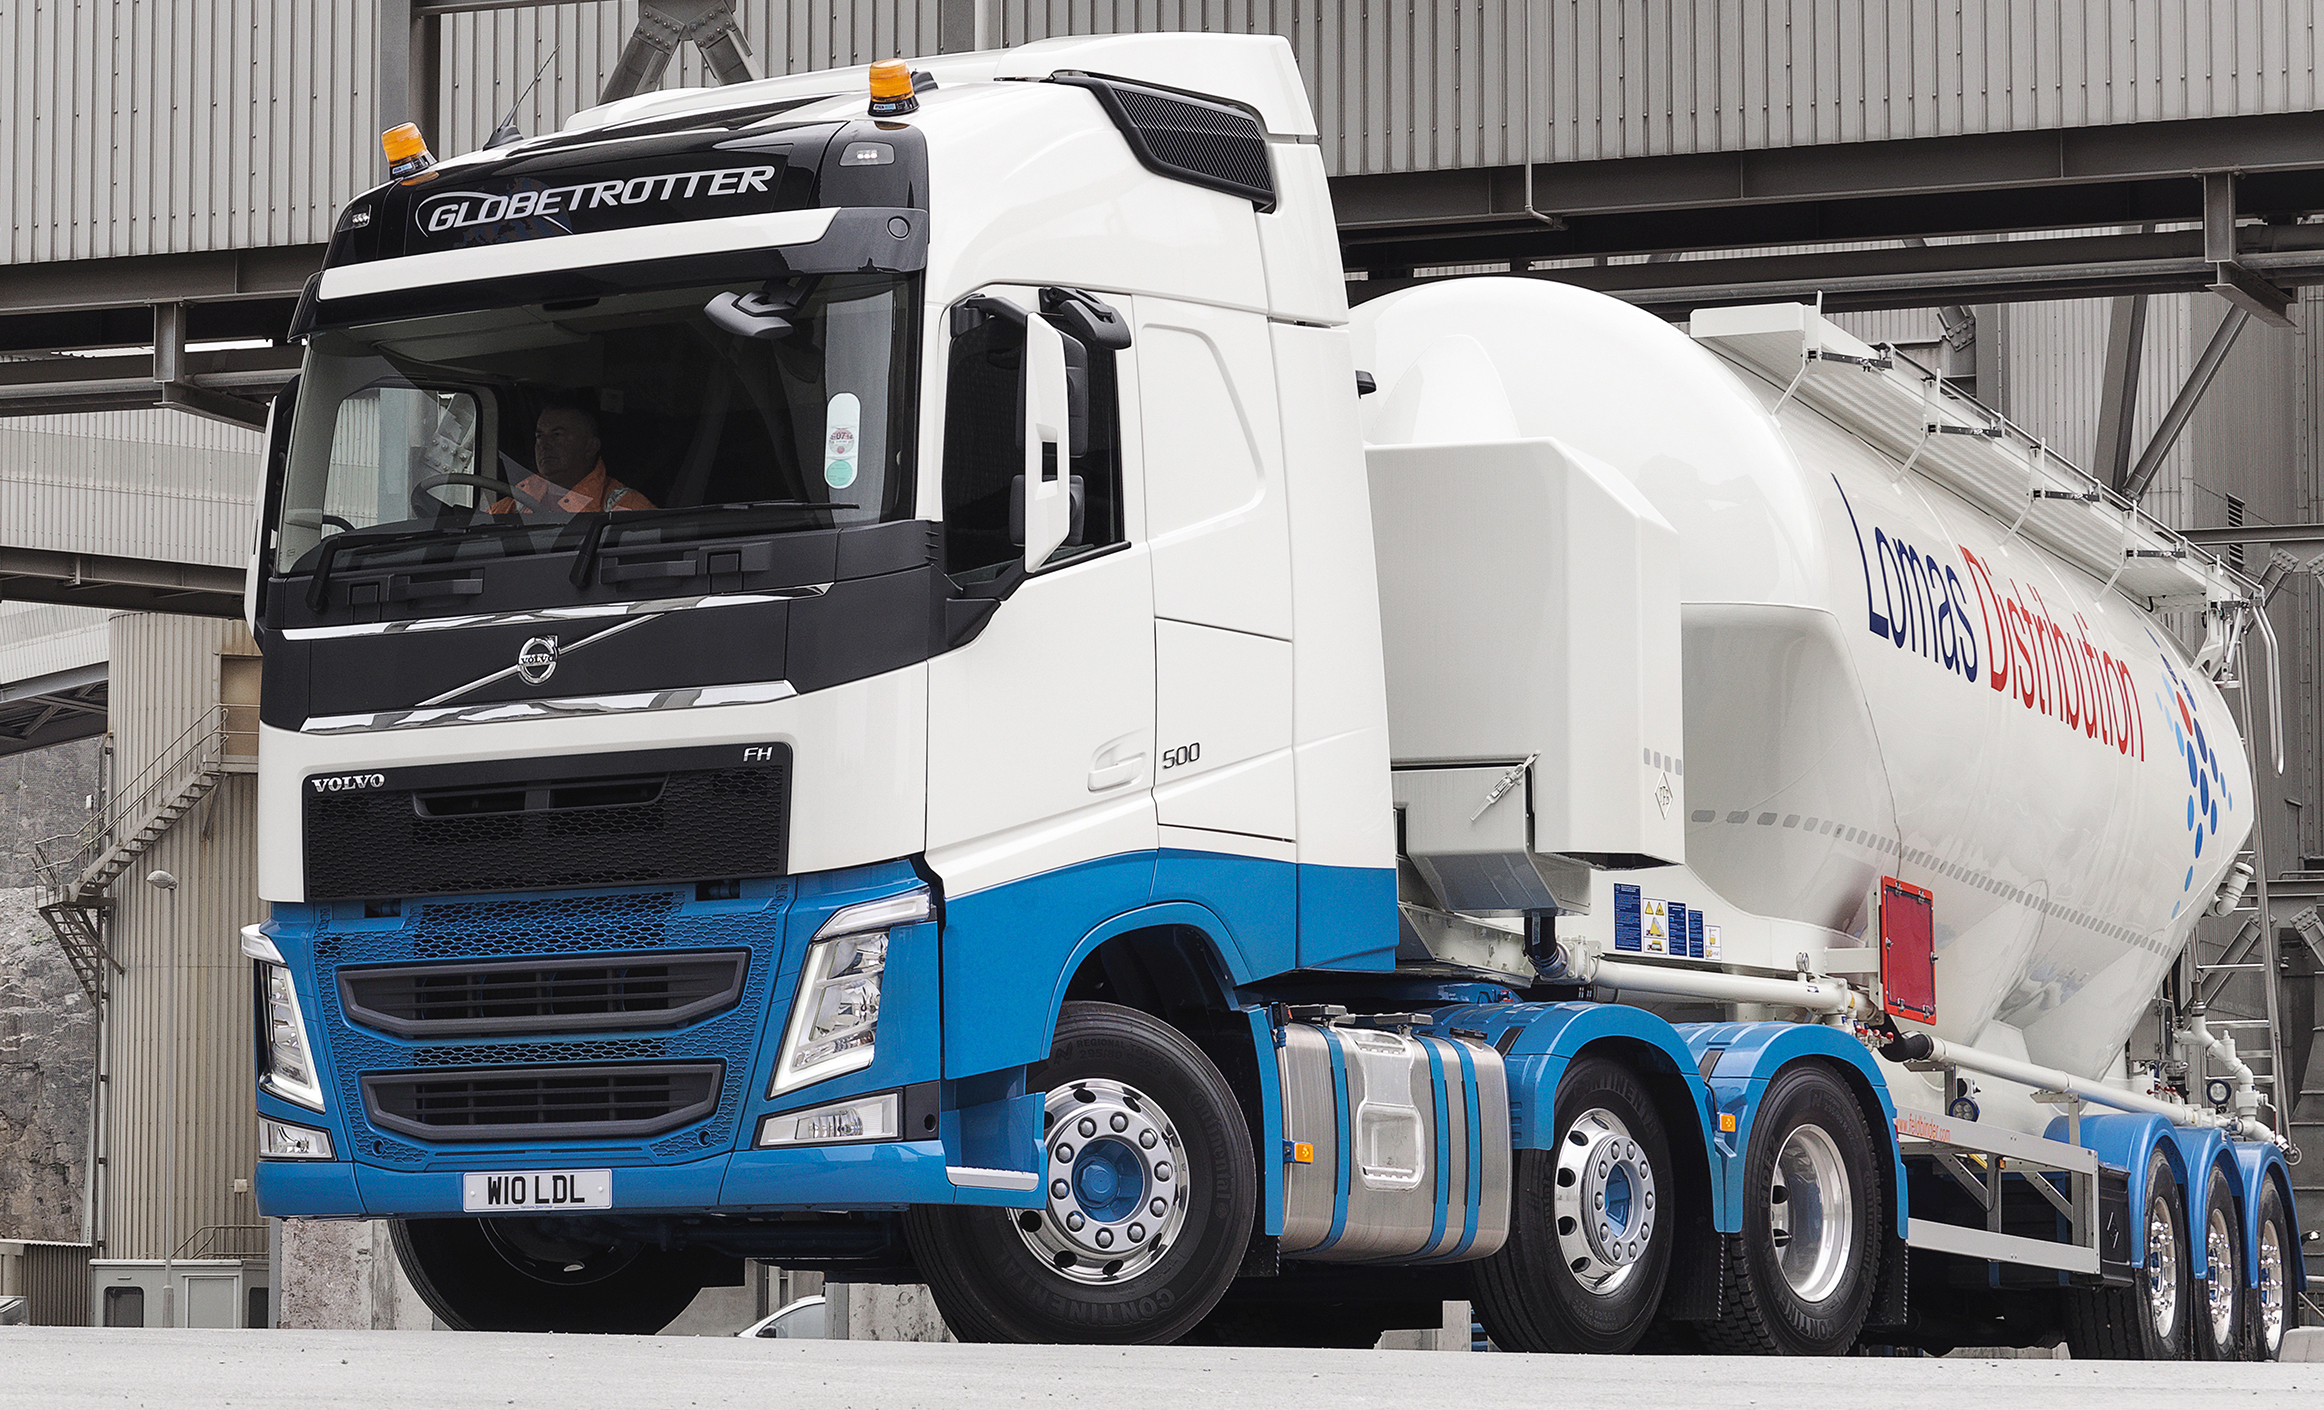 Lomas Distribution Makes Major Investment With 70 Volvo